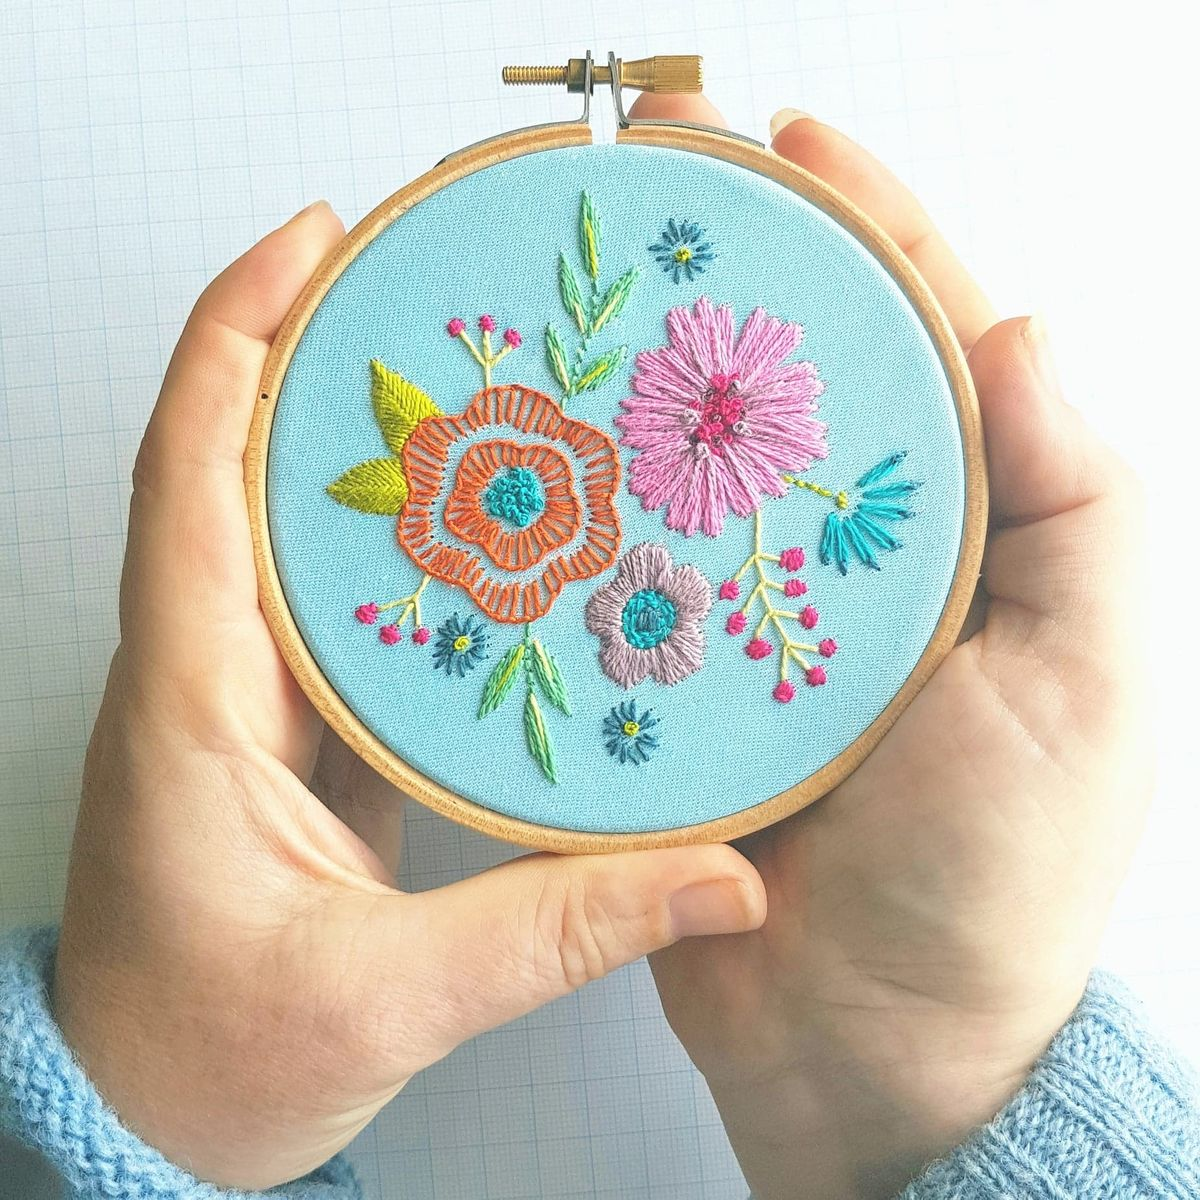 Printed Embroidery Pattern Small Floral Posy - product images  of